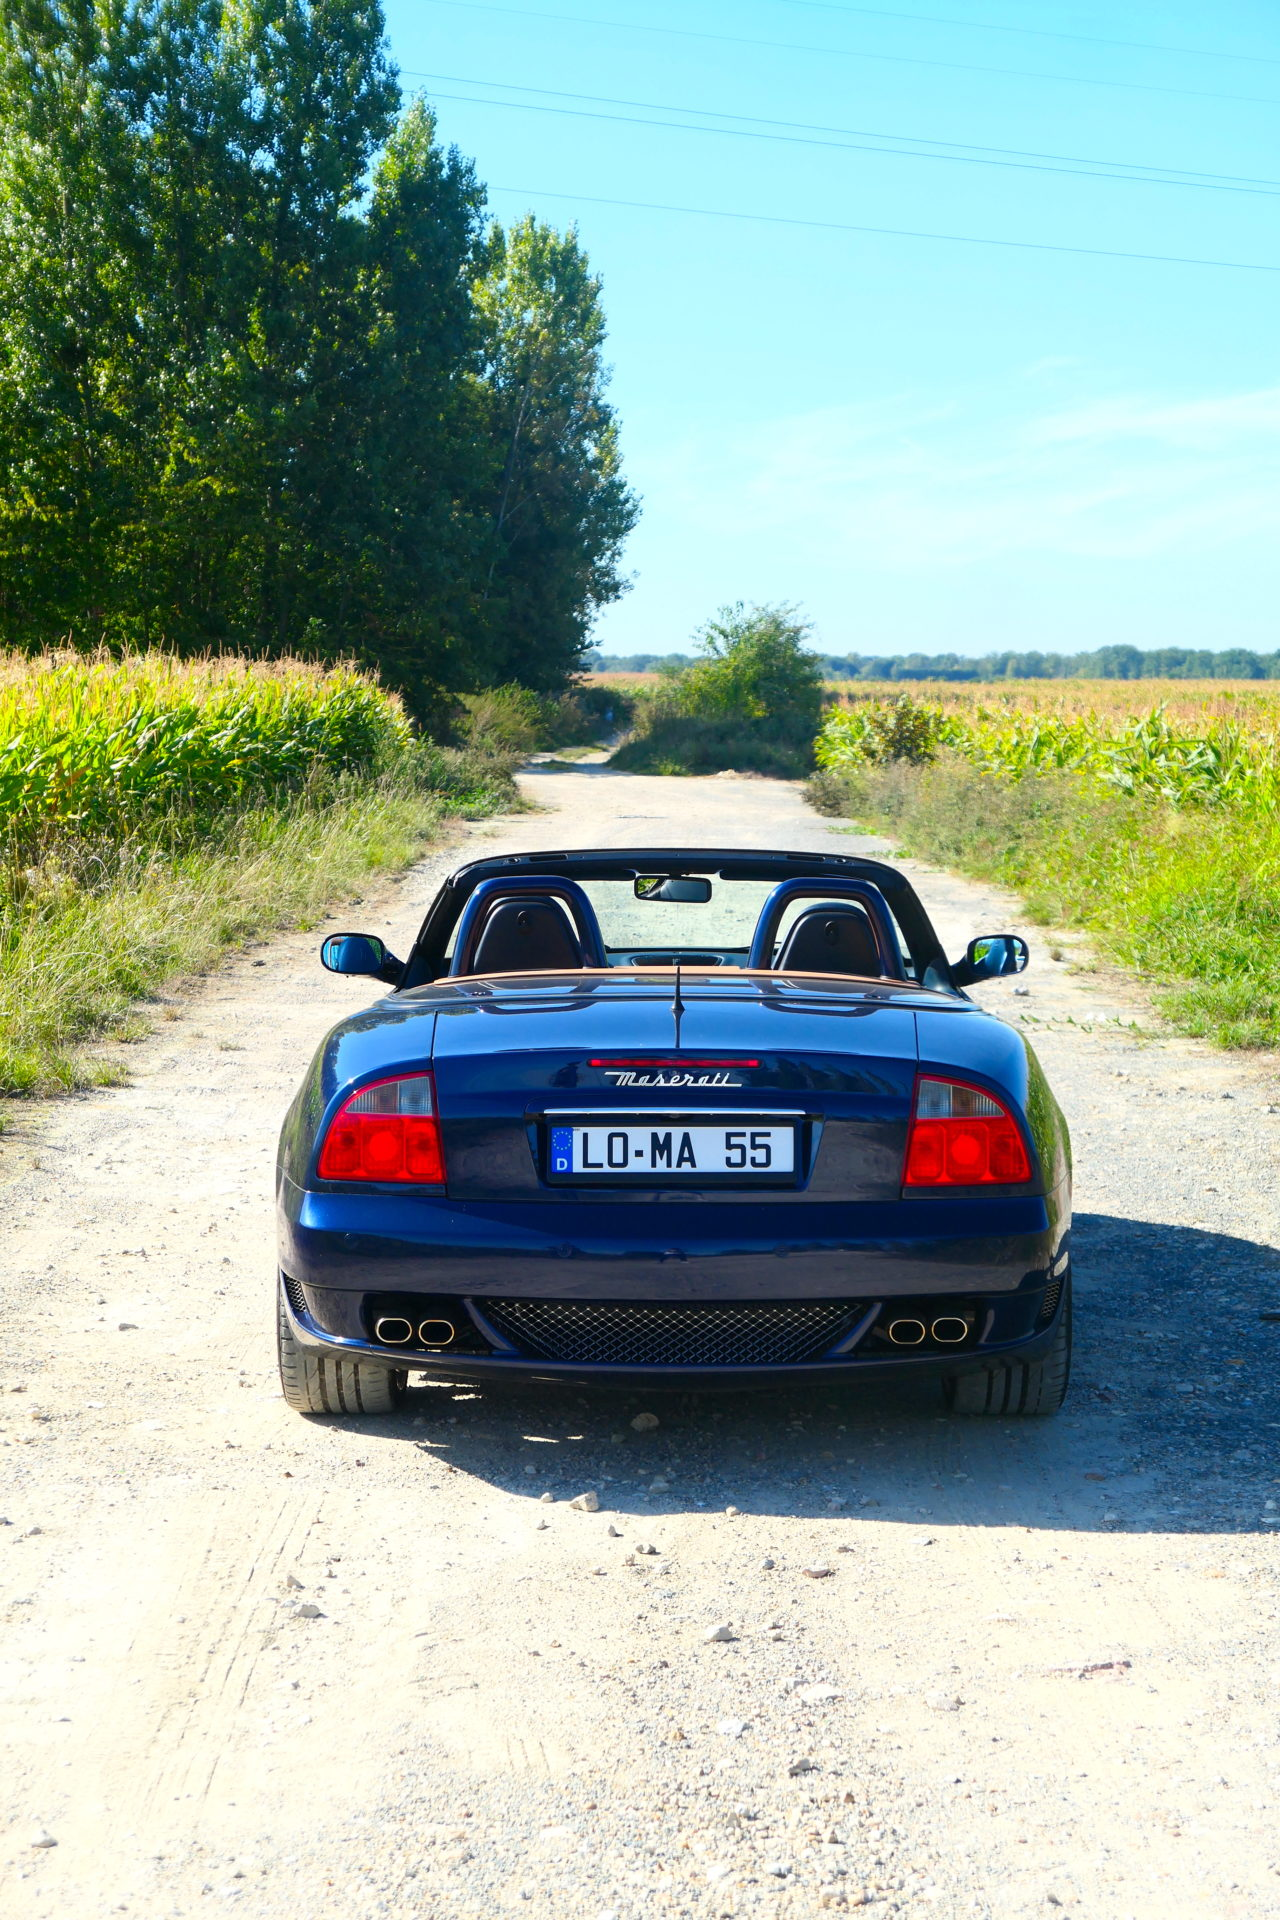 roadrugcars road rug cars maserati gransport spyder rear